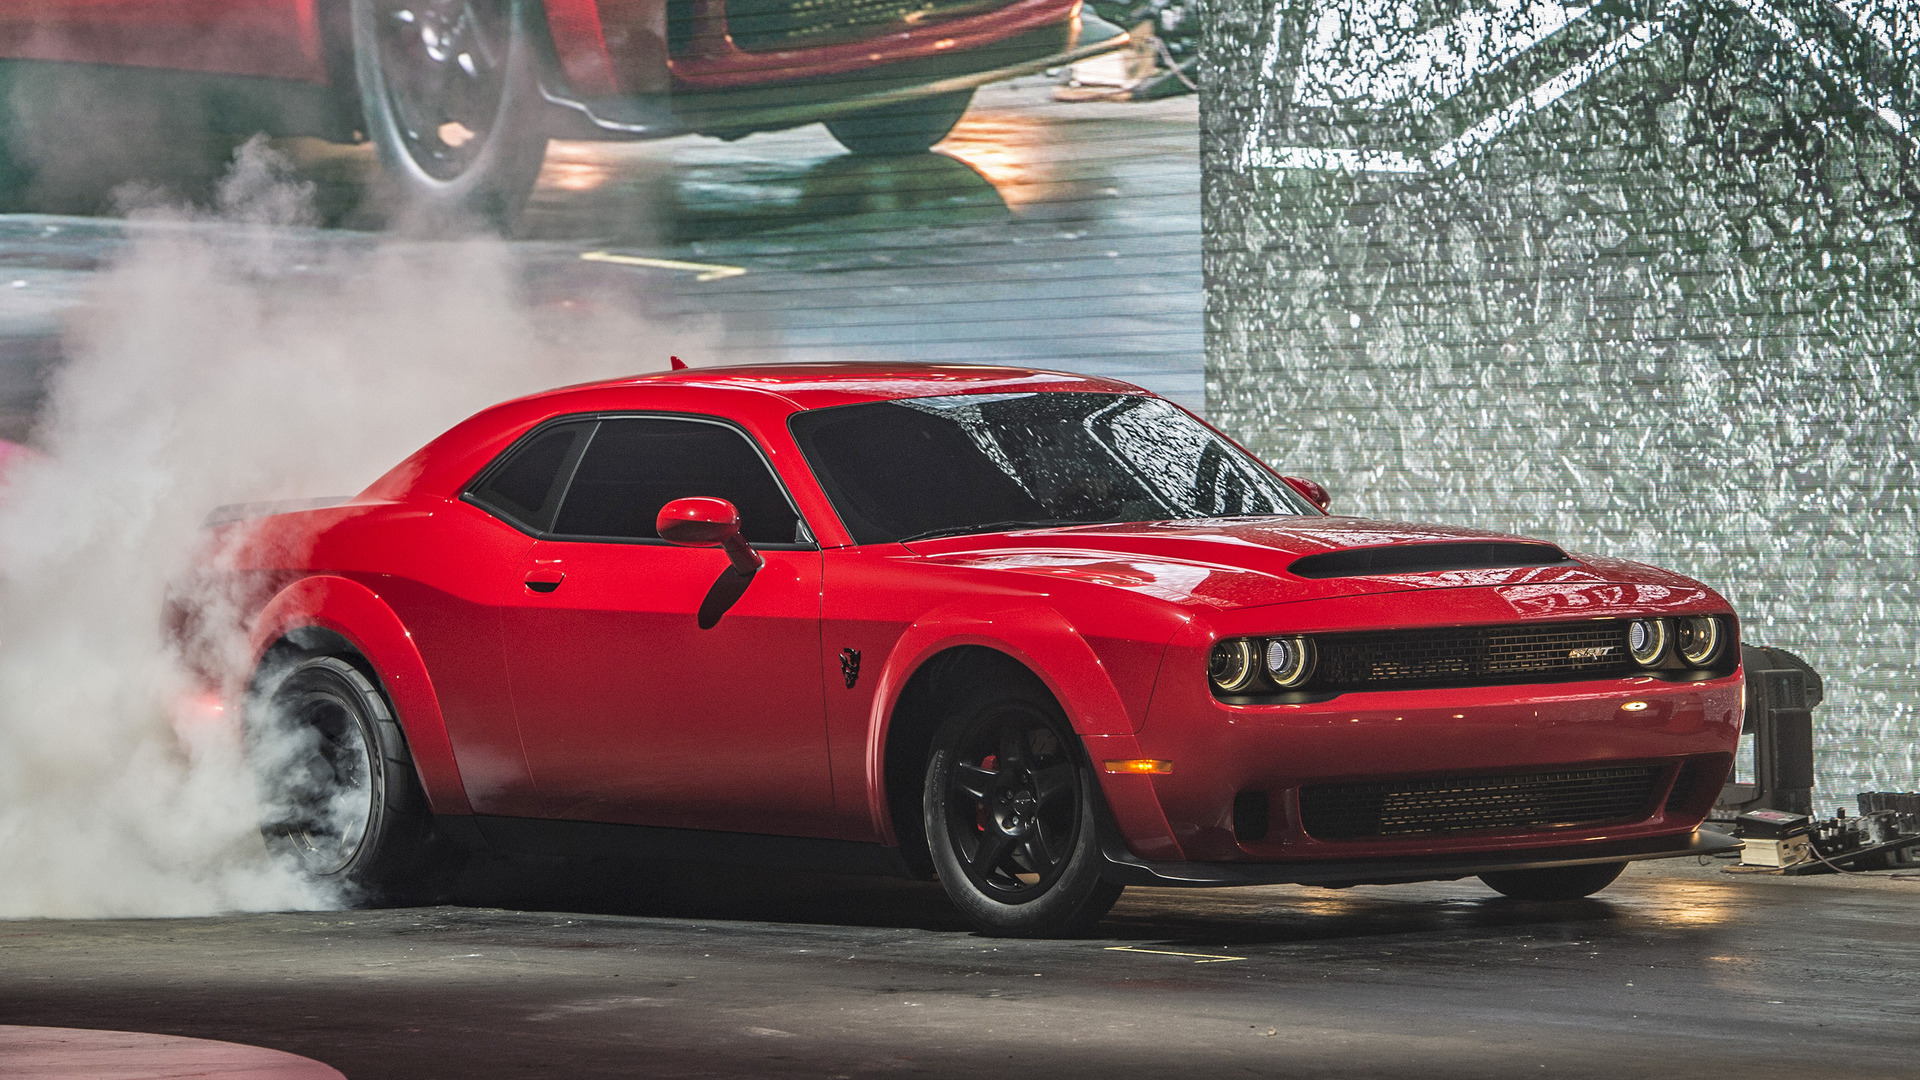 Dodge 0 60 >> Dodge Demon Goes 0 60 In 2 1 Seconds If You Don T Start At Zero